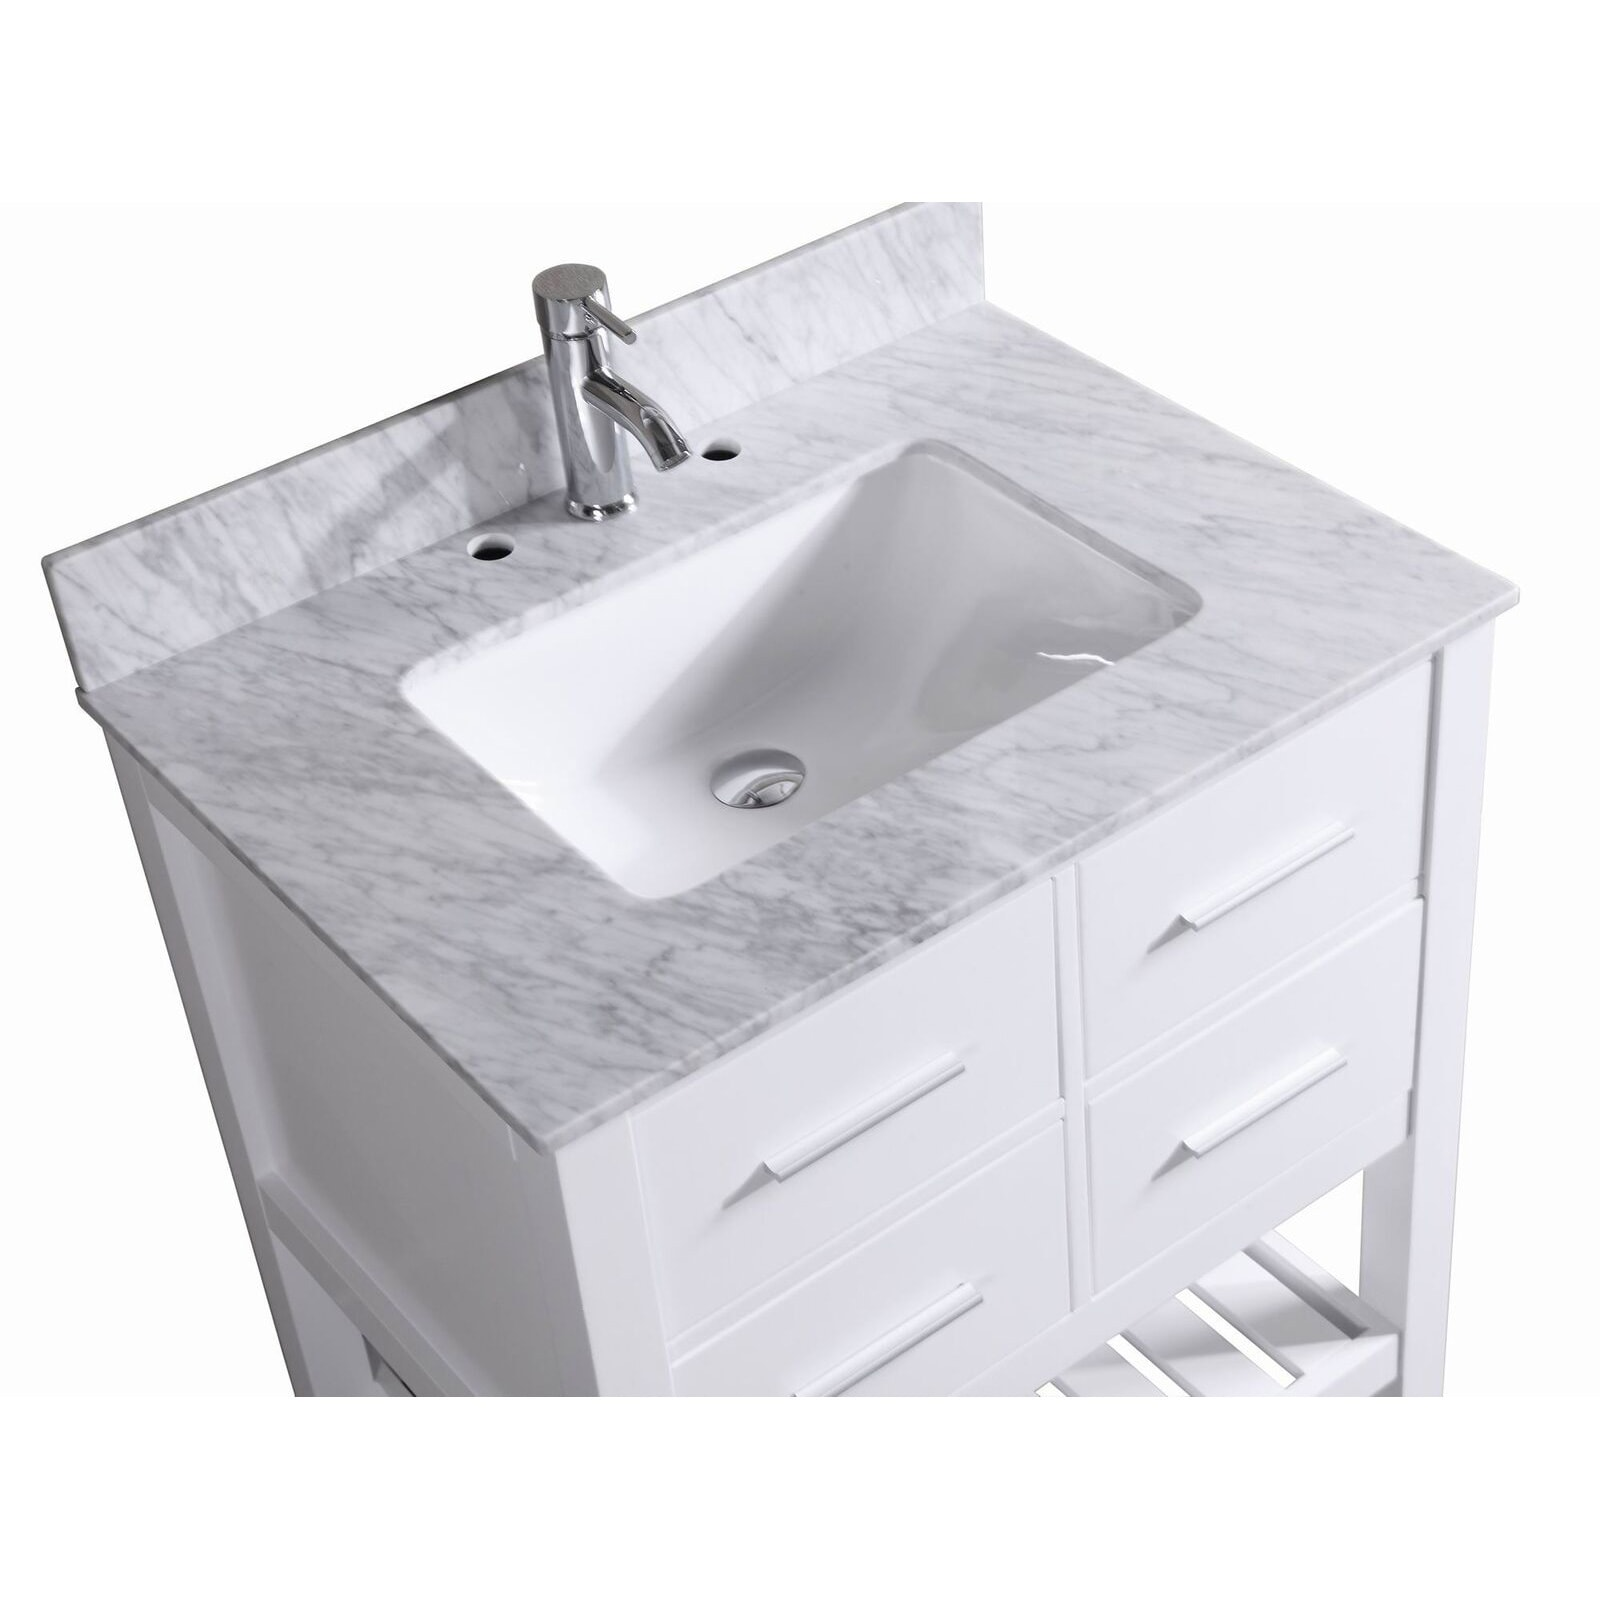 30 Inch Belvedere Bathroom Vanity With Marble Top (2 Options Available)